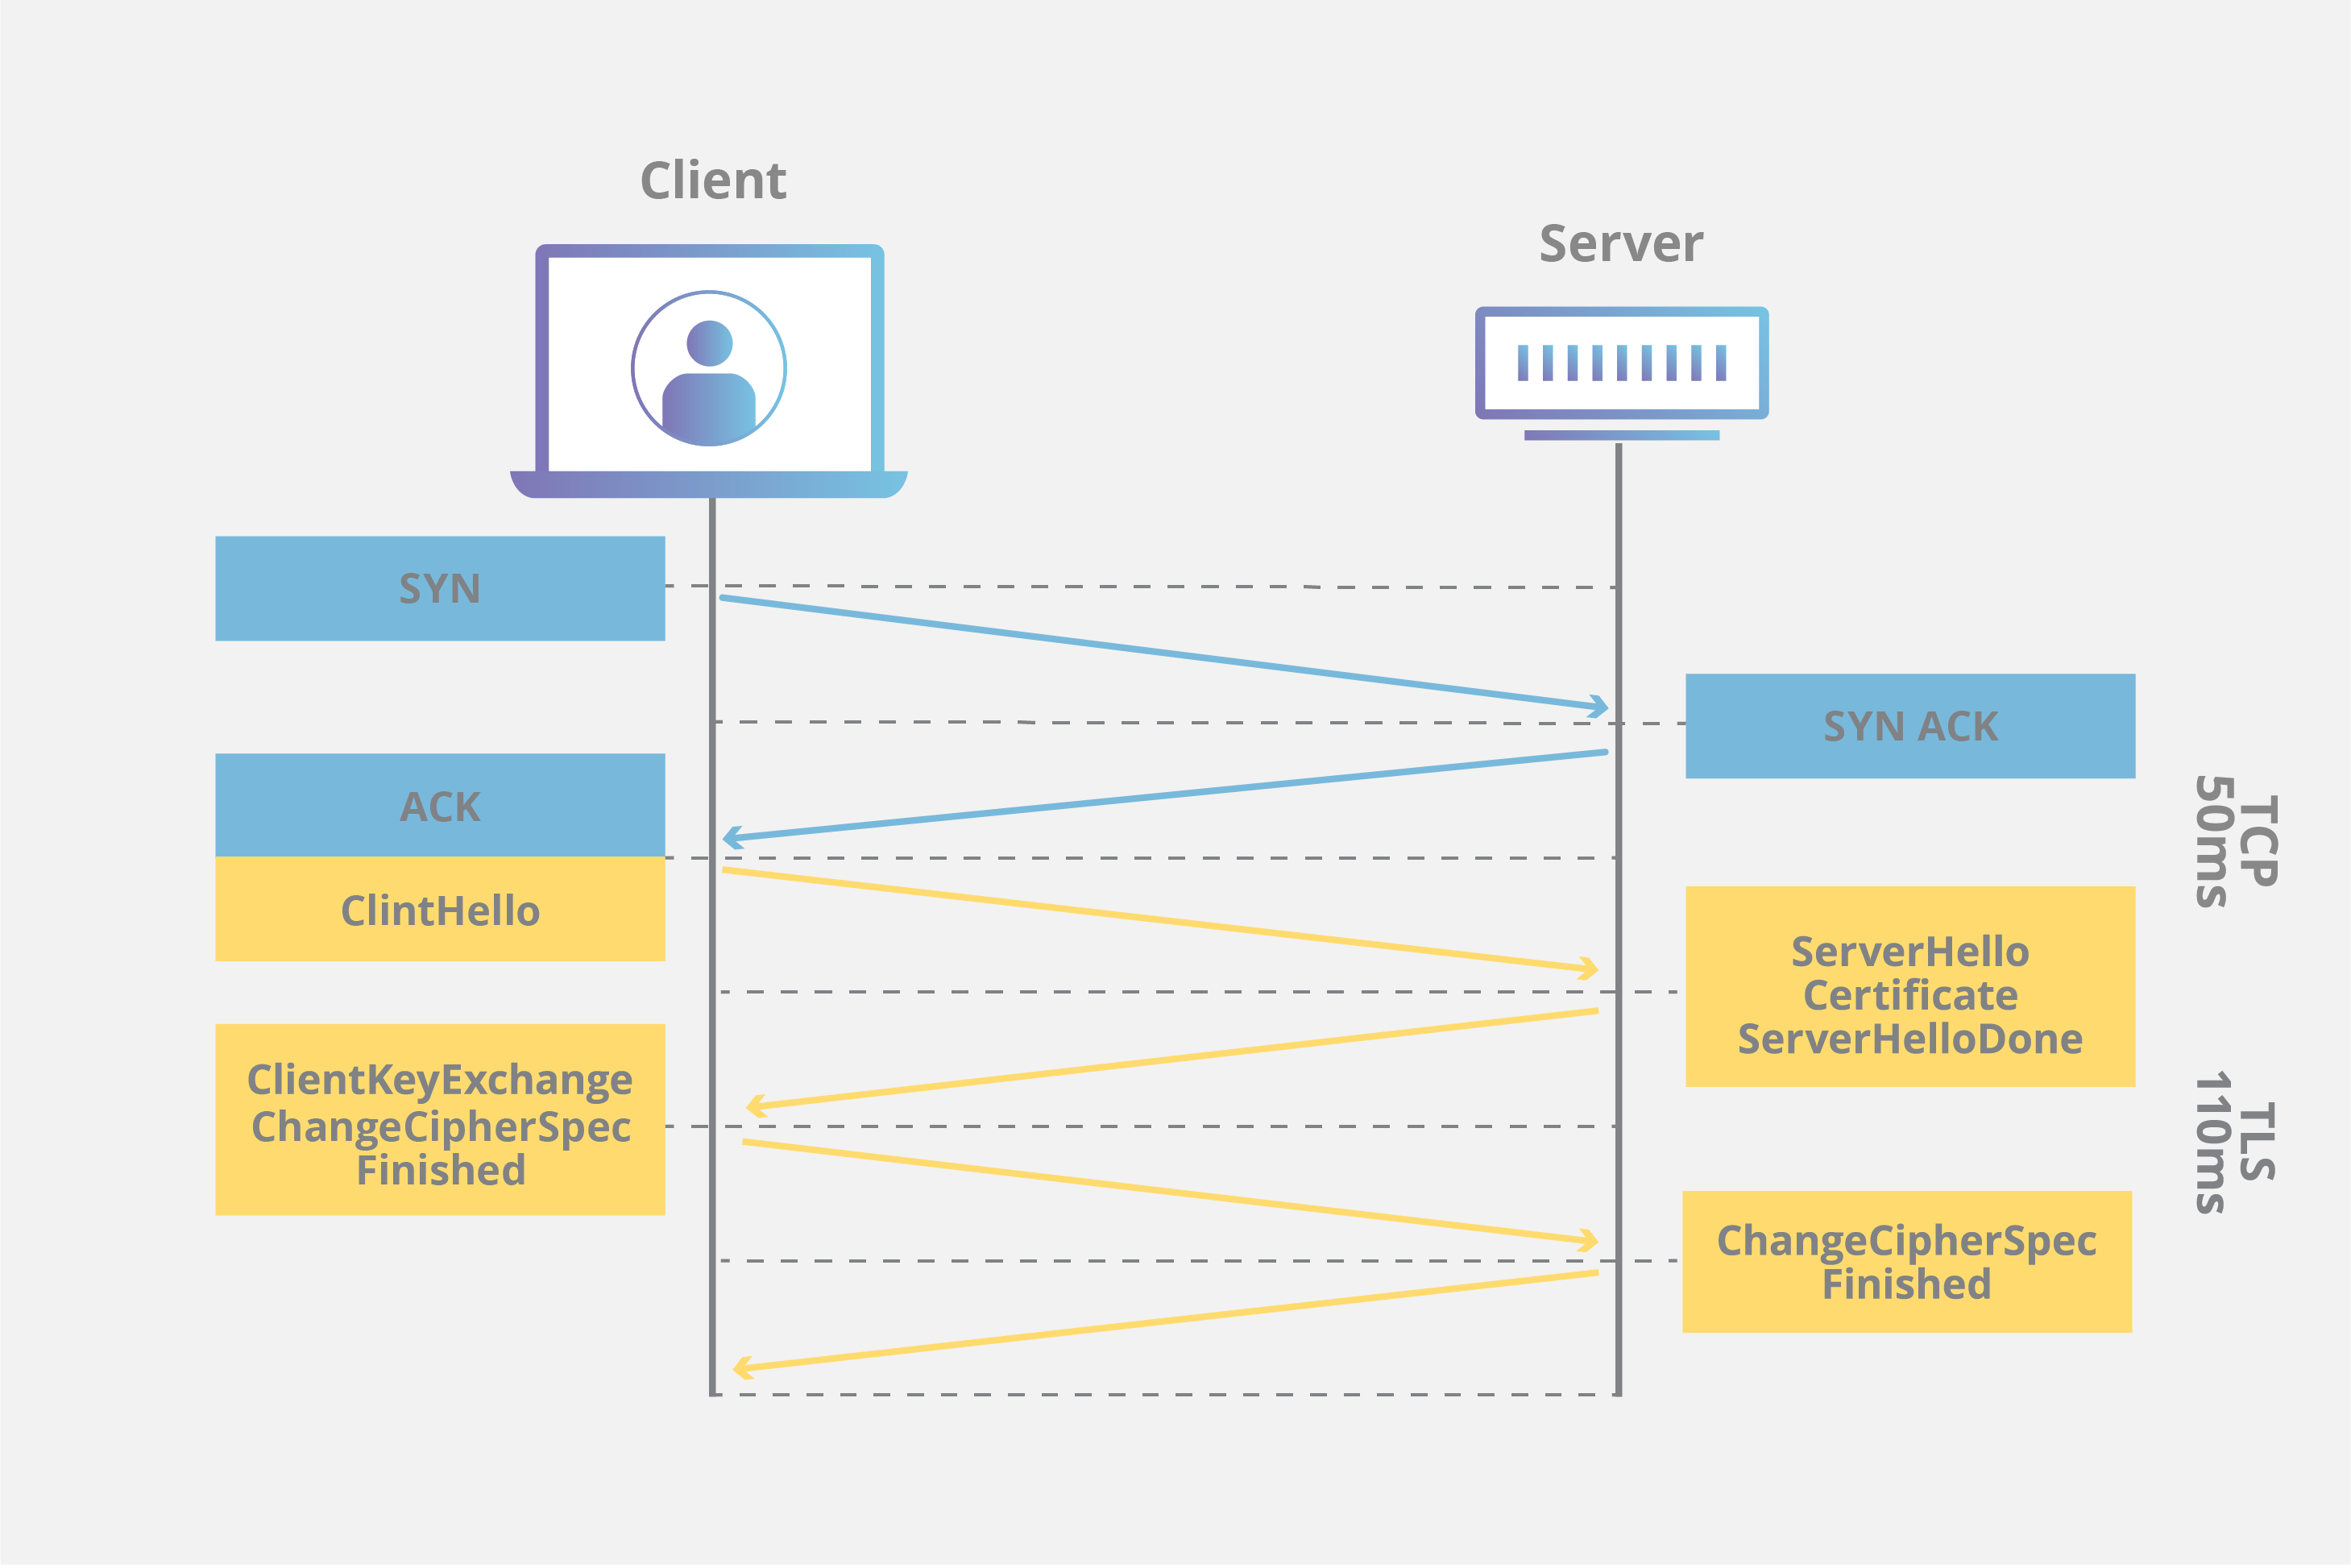 SSL/TLS handshake diagram